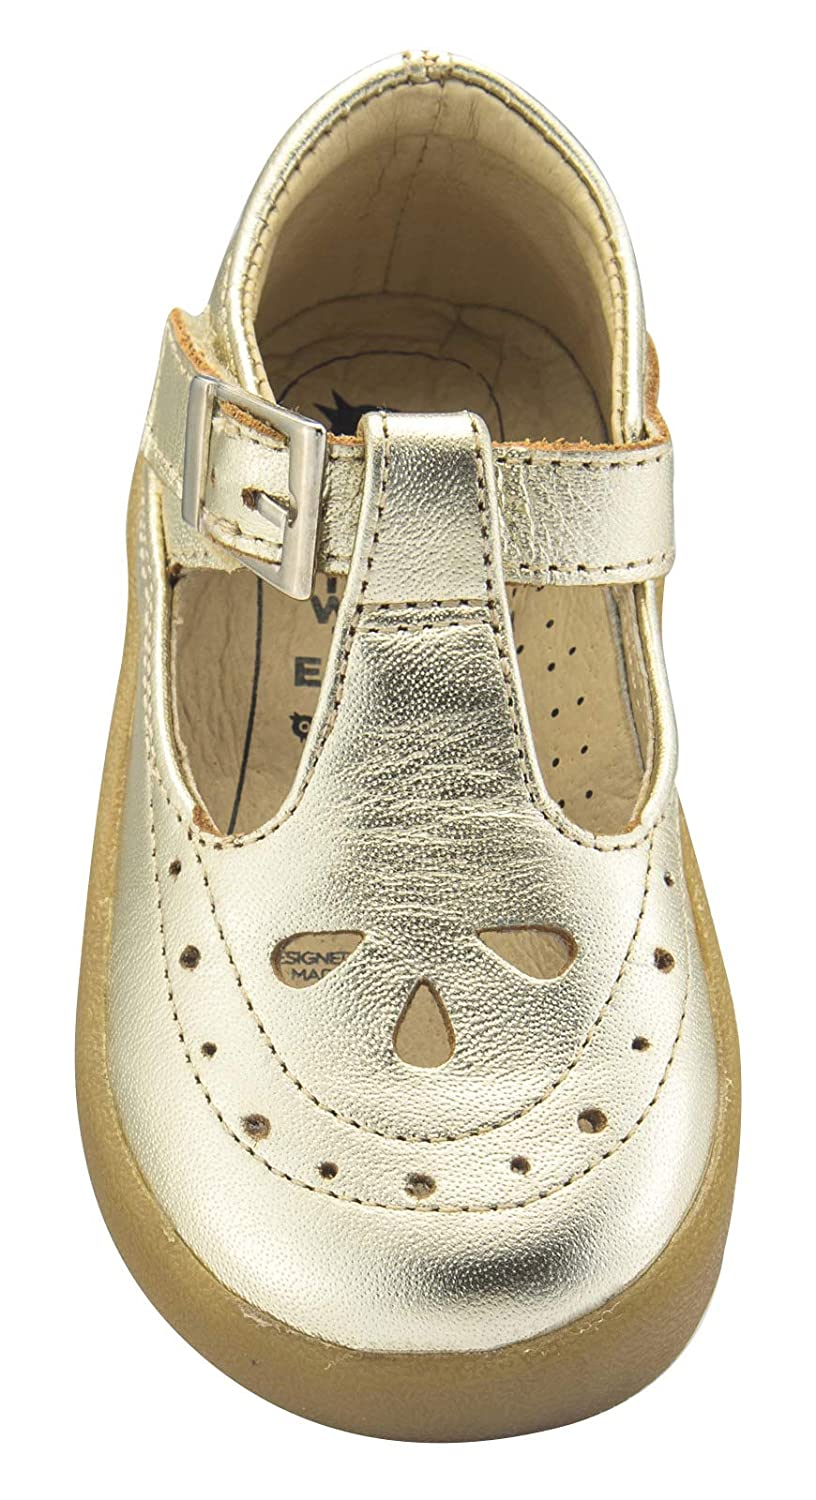 Old Soles Girls Royal Shoe Leather Mary Jane Dress Shoes